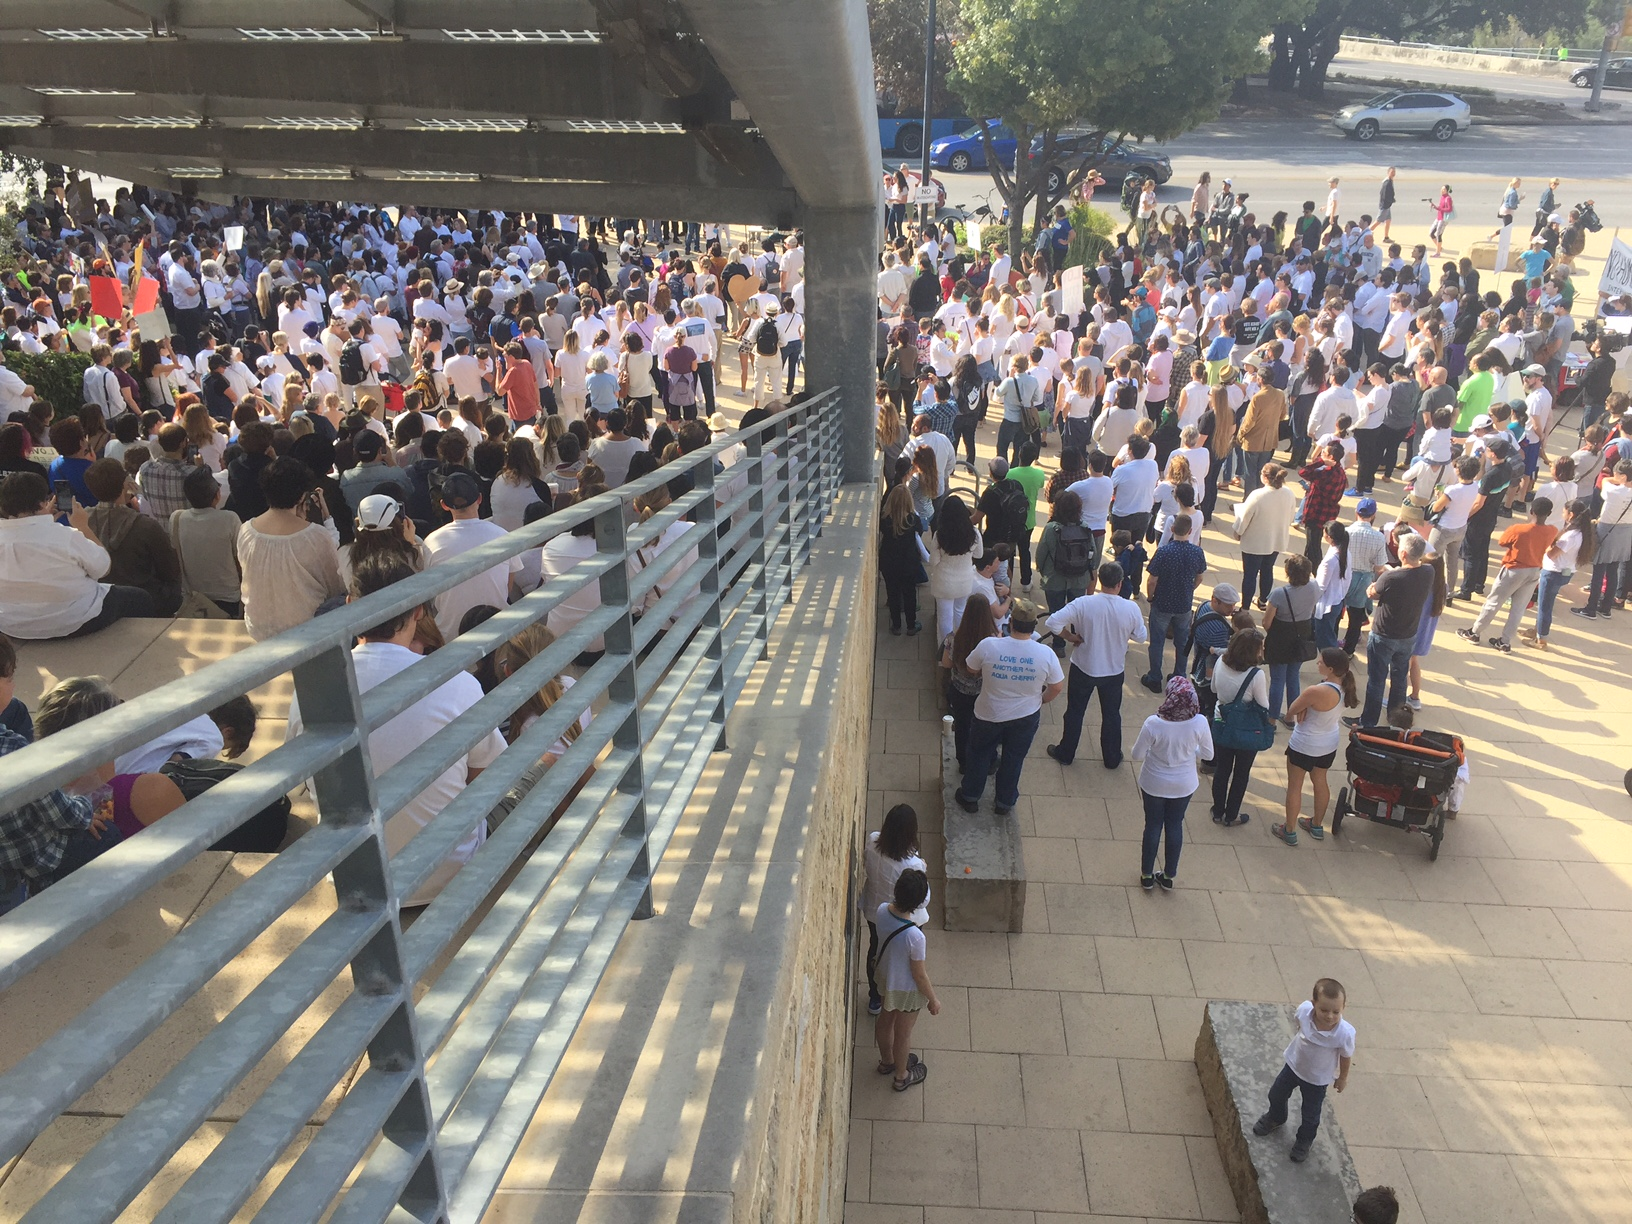 Hundreds gathered at City Hall for a pro-immigration conference that turned into rally. (KXAN_Frank Martinez)_374131